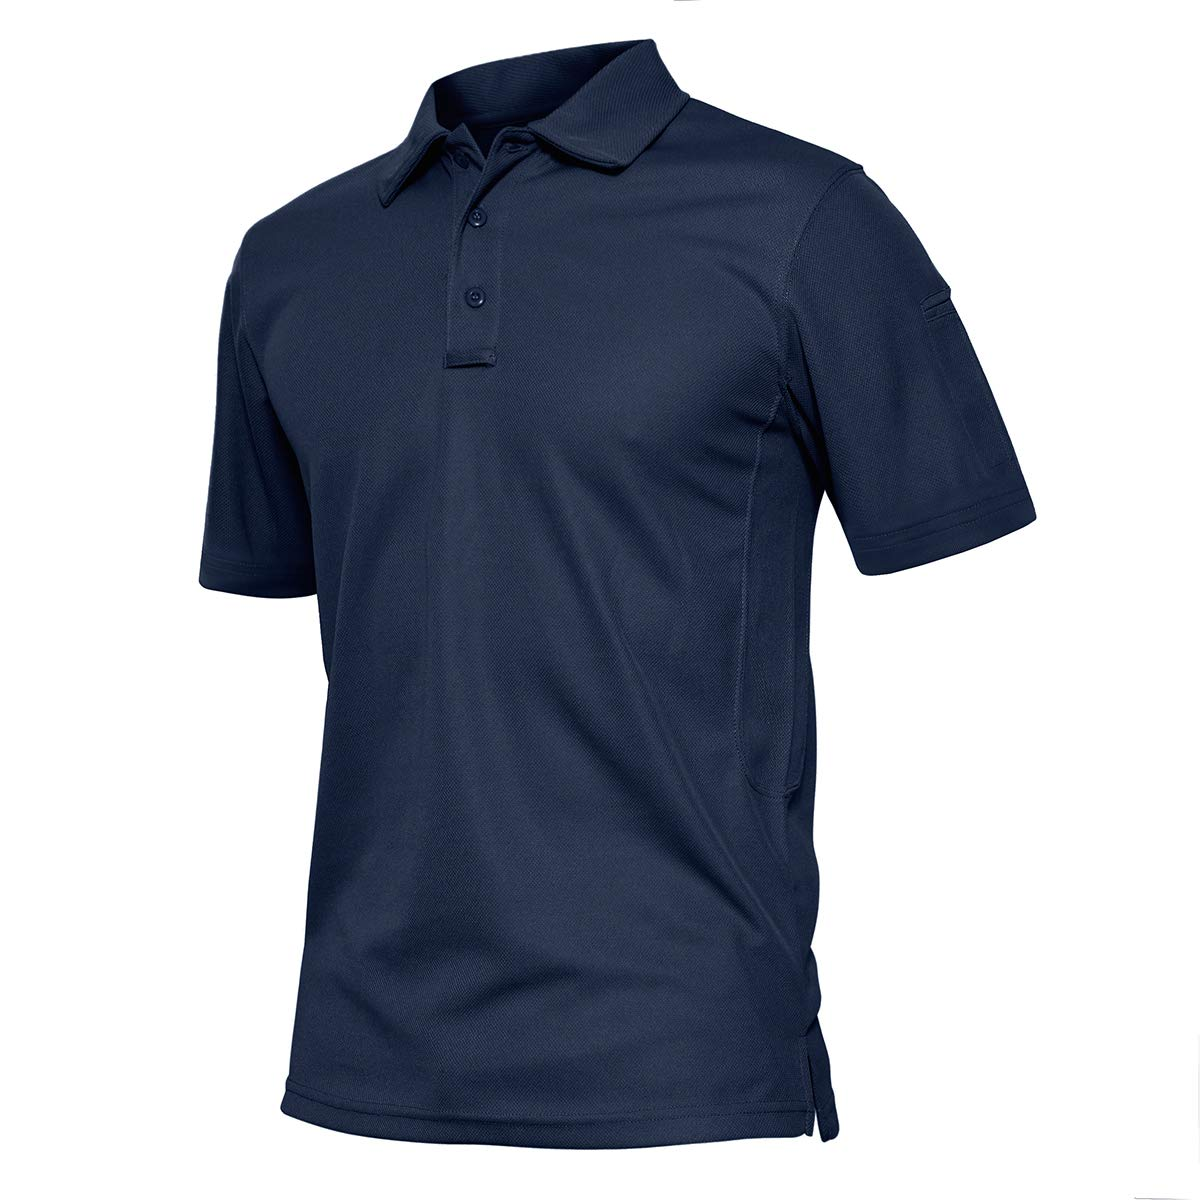 TACVASEN Men's Performance Battle Top Tactical Polo Combat Long Sleeve,US S by TACVASEN